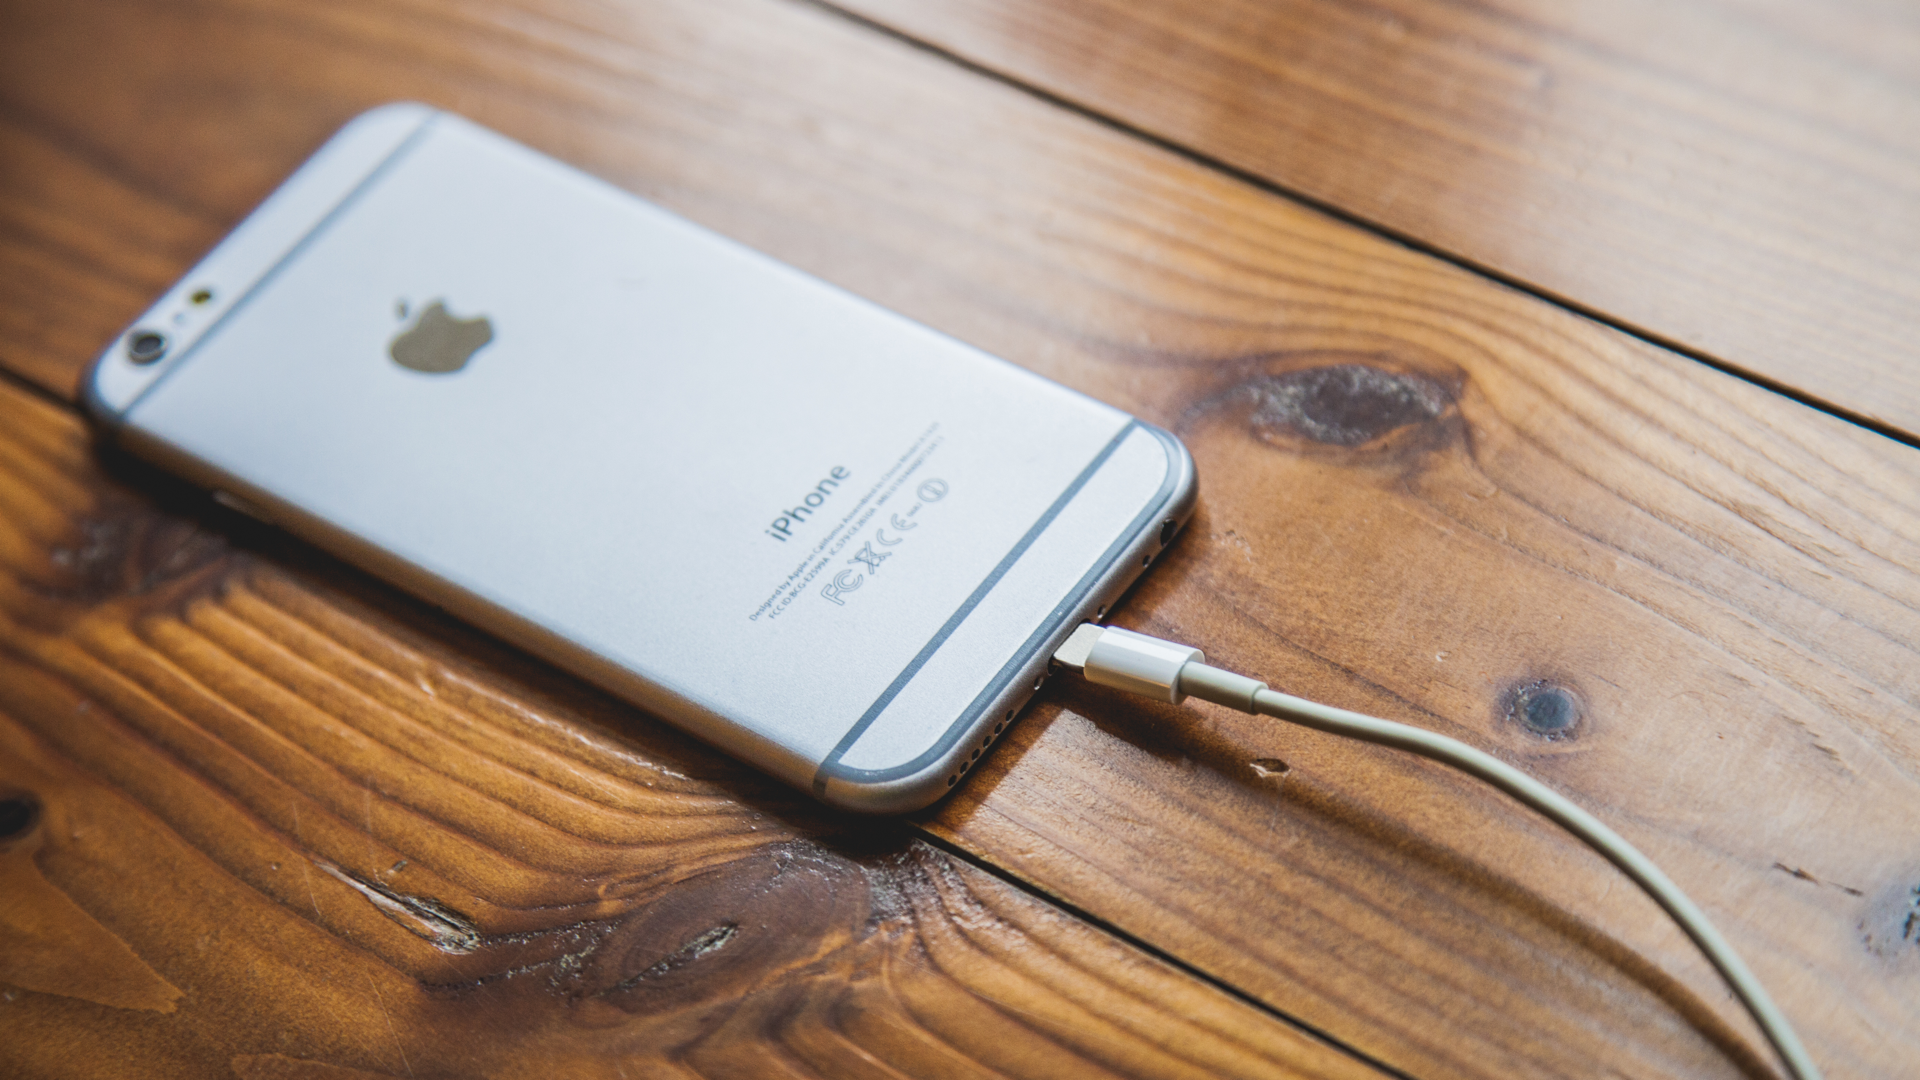 iPhone 6s charging 16x9